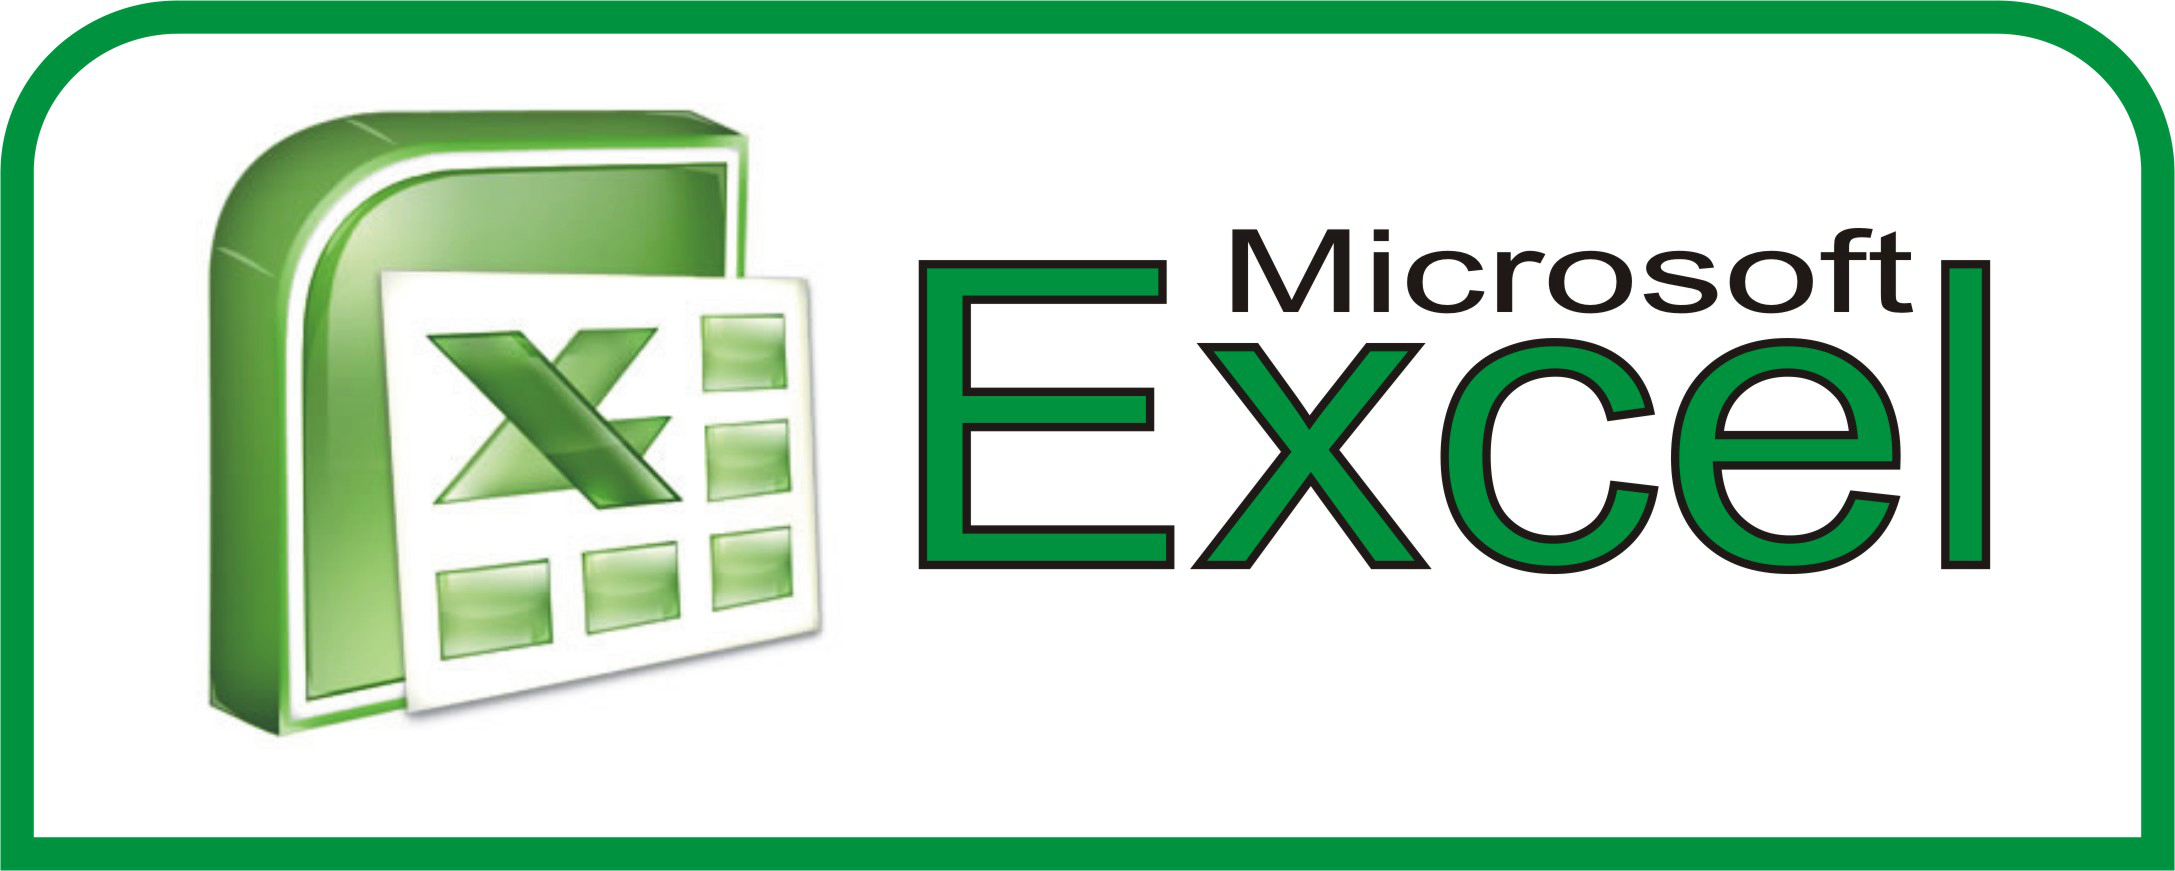 Ediblewildsus  Wonderful  Excel Shortcuts You Probably Didnt Know About  Techdissected With Marvelous Selection Pane Excel Besides Update Sql Table From Excel Spreadsheet Furthermore Using Excel In Accounting With Alluring Profit   Loss Account Excel Format Also London Excel Train Station In Addition Excel Data Loader And Excel Daily Planner As Well As Countif Excel Multiple Criteria Additionally Excel Sine Function From Techdissectedcom With Ediblewildsus  Marvelous  Excel Shortcuts You Probably Didnt Know About  Techdissected With Alluring Selection Pane Excel Besides Update Sql Table From Excel Spreadsheet Furthermore Using Excel In Accounting And Wonderful Profit   Loss Account Excel Format Also London Excel Train Station In Addition Excel Data Loader From Techdissectedcom